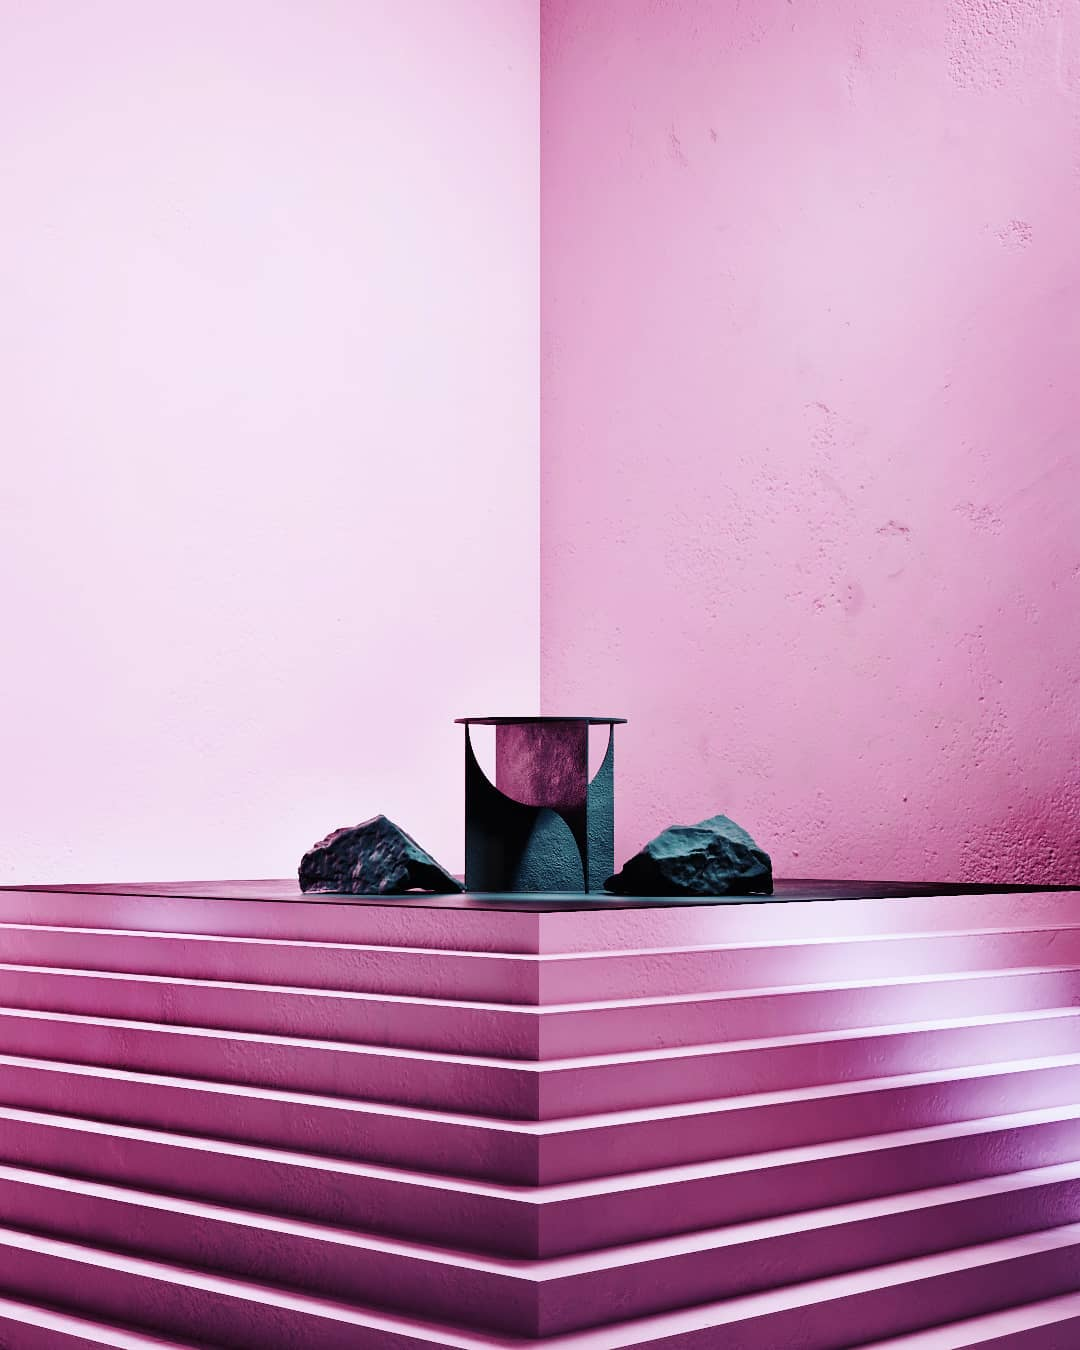 Pink space with a round metallic table and black rocks in the middle and a full length and width 90 degree stair design staircase leading up to the table and the stones